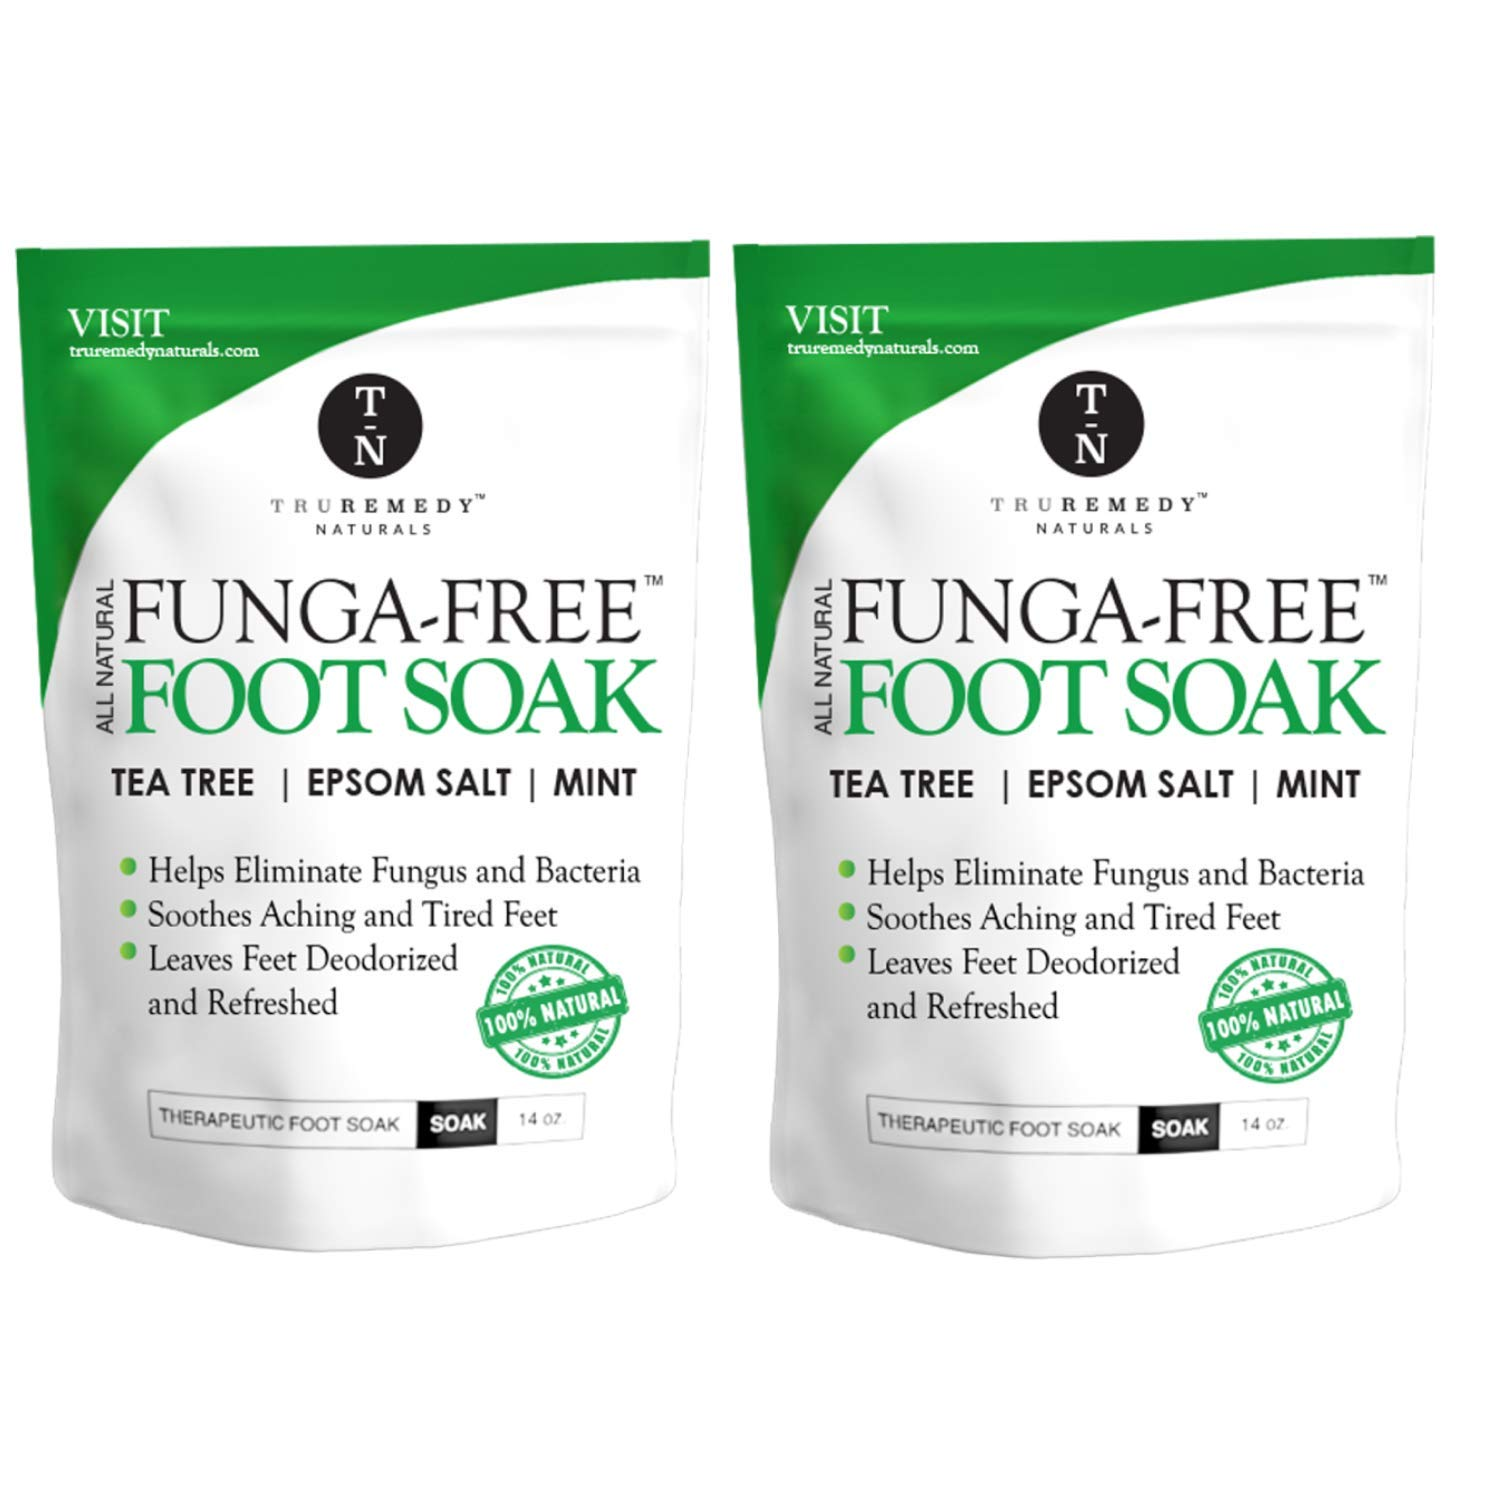 Tea Tree Oil Foot Soak With MSM, Epsom Salt & Mint, Feet Soak Helps Toenail System, Athletes Foot & Stubborn Foot Odor - Foot Bath Salt Softens Calluses & Soothes Sore Tired Feet, 14 Ounce (Pack of 2) by Truremedy Naturals